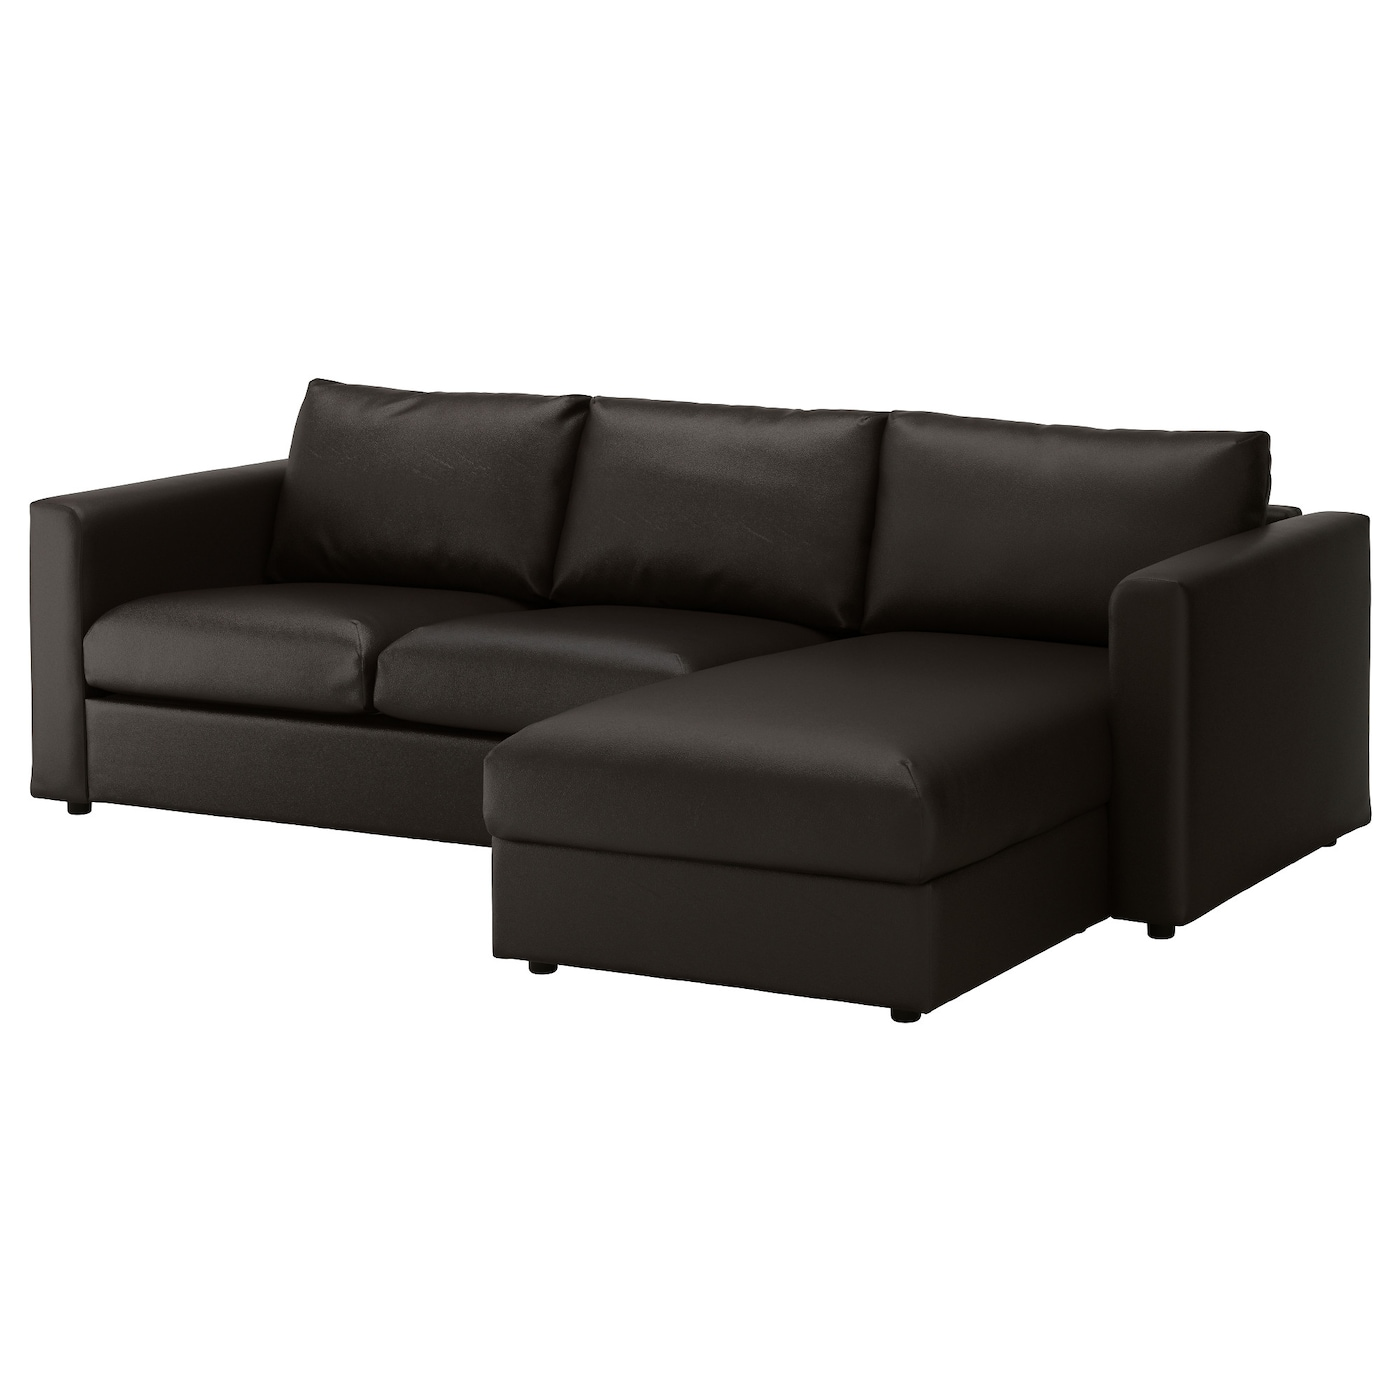 Vimle 3 seat sofa with chaise longue farsta black ikea for Sofa chaise longue